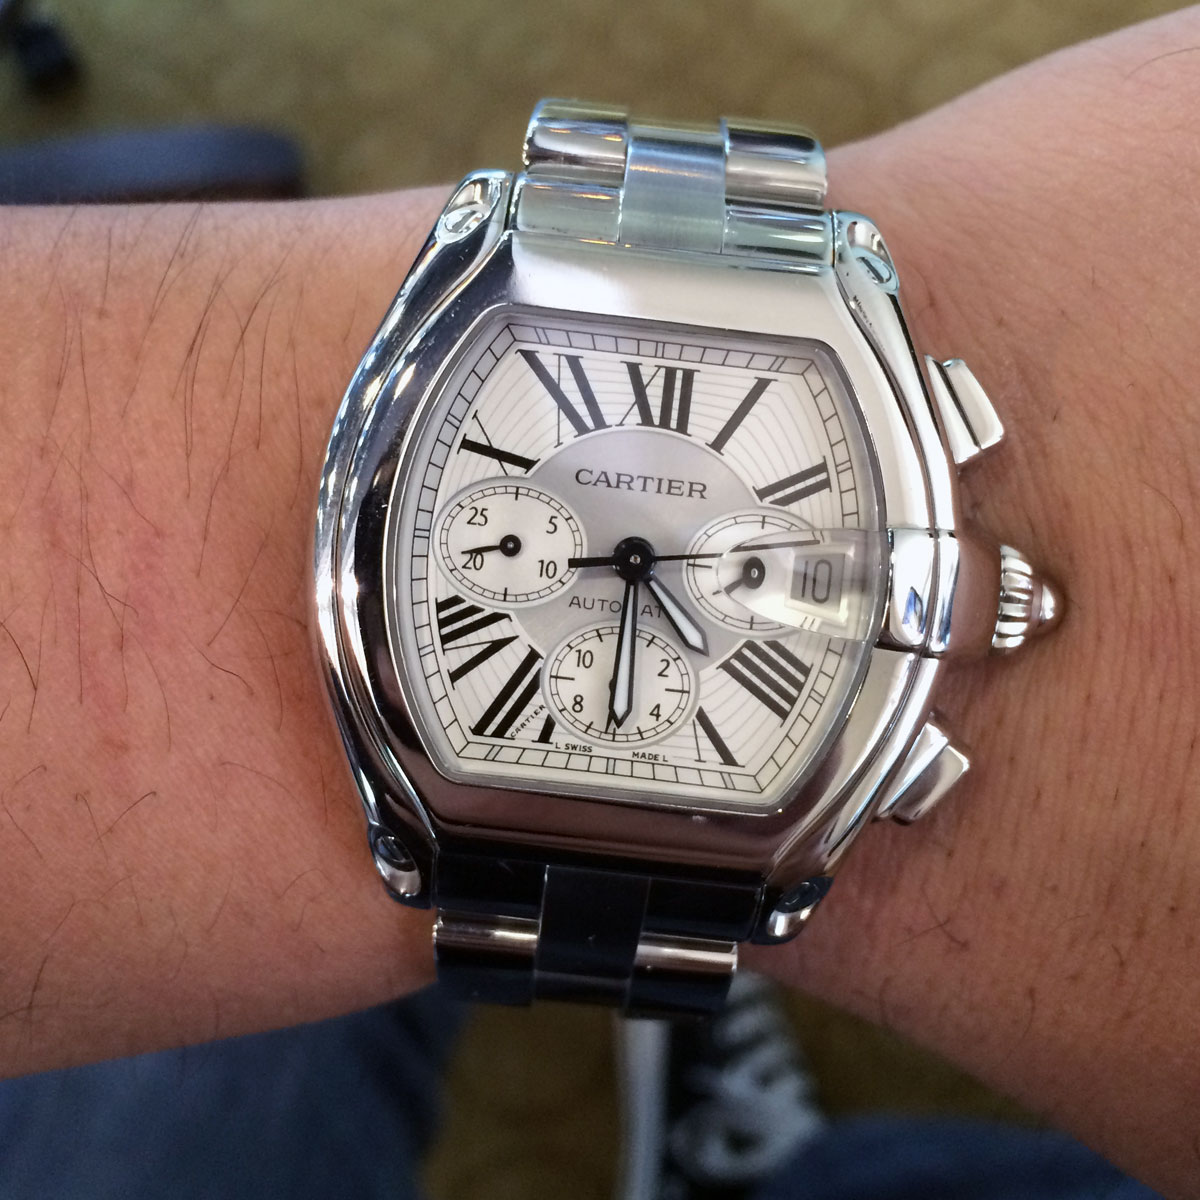 Cartier Roadster XL2618 Silver Chronograph Dial Watch